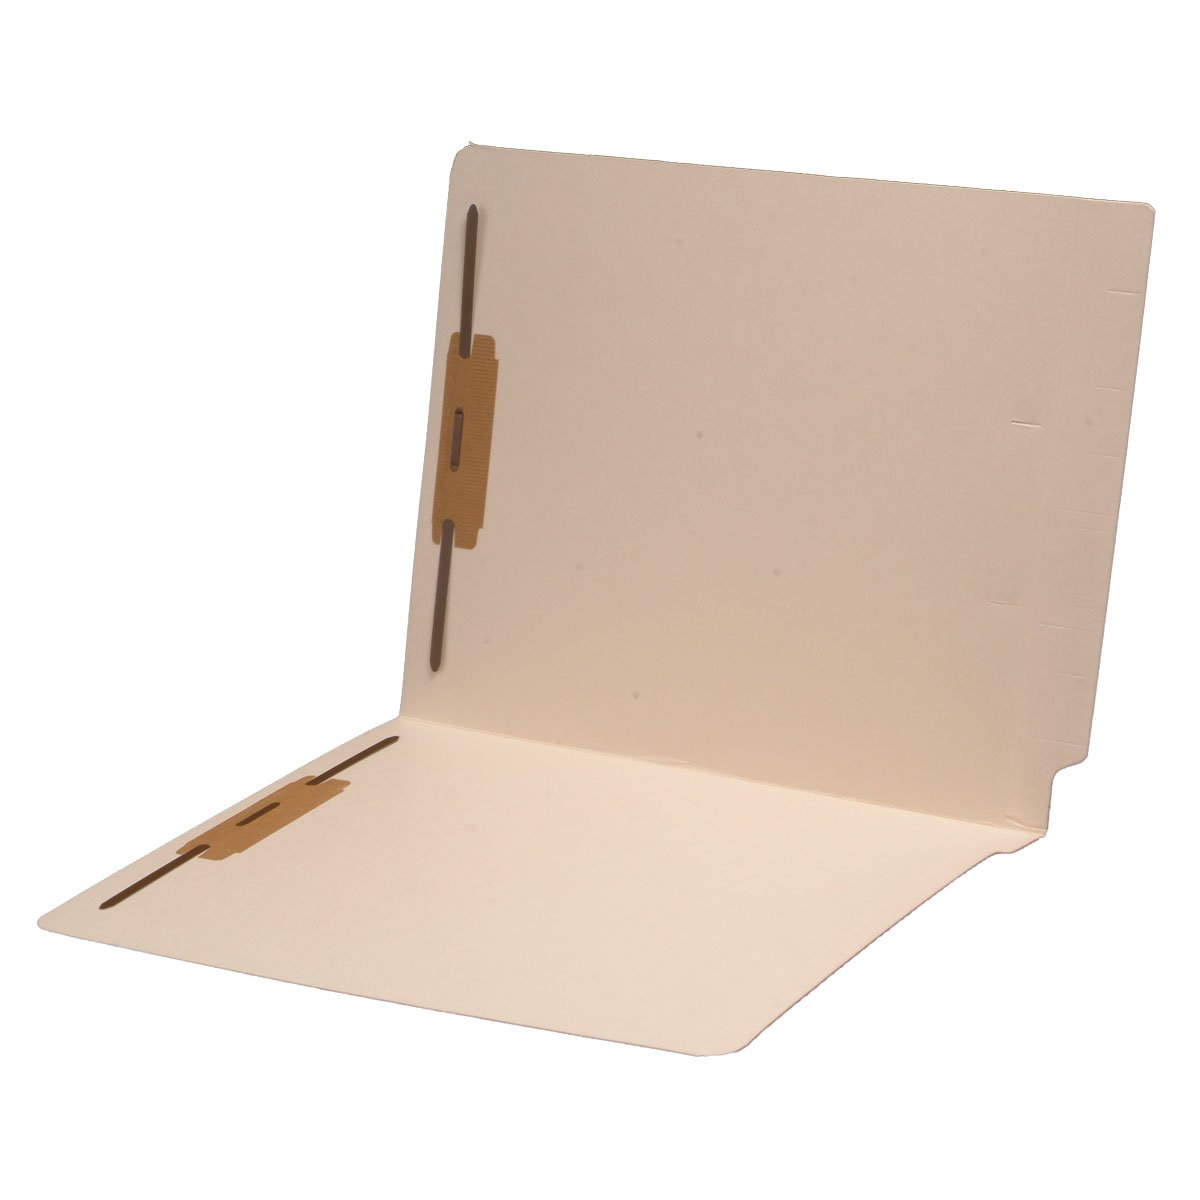 14 pt Manila Folders, Full Cut 2-Ply End Tab, Letter Size, Fastener Pos #1 & #3 (Carton of 250)